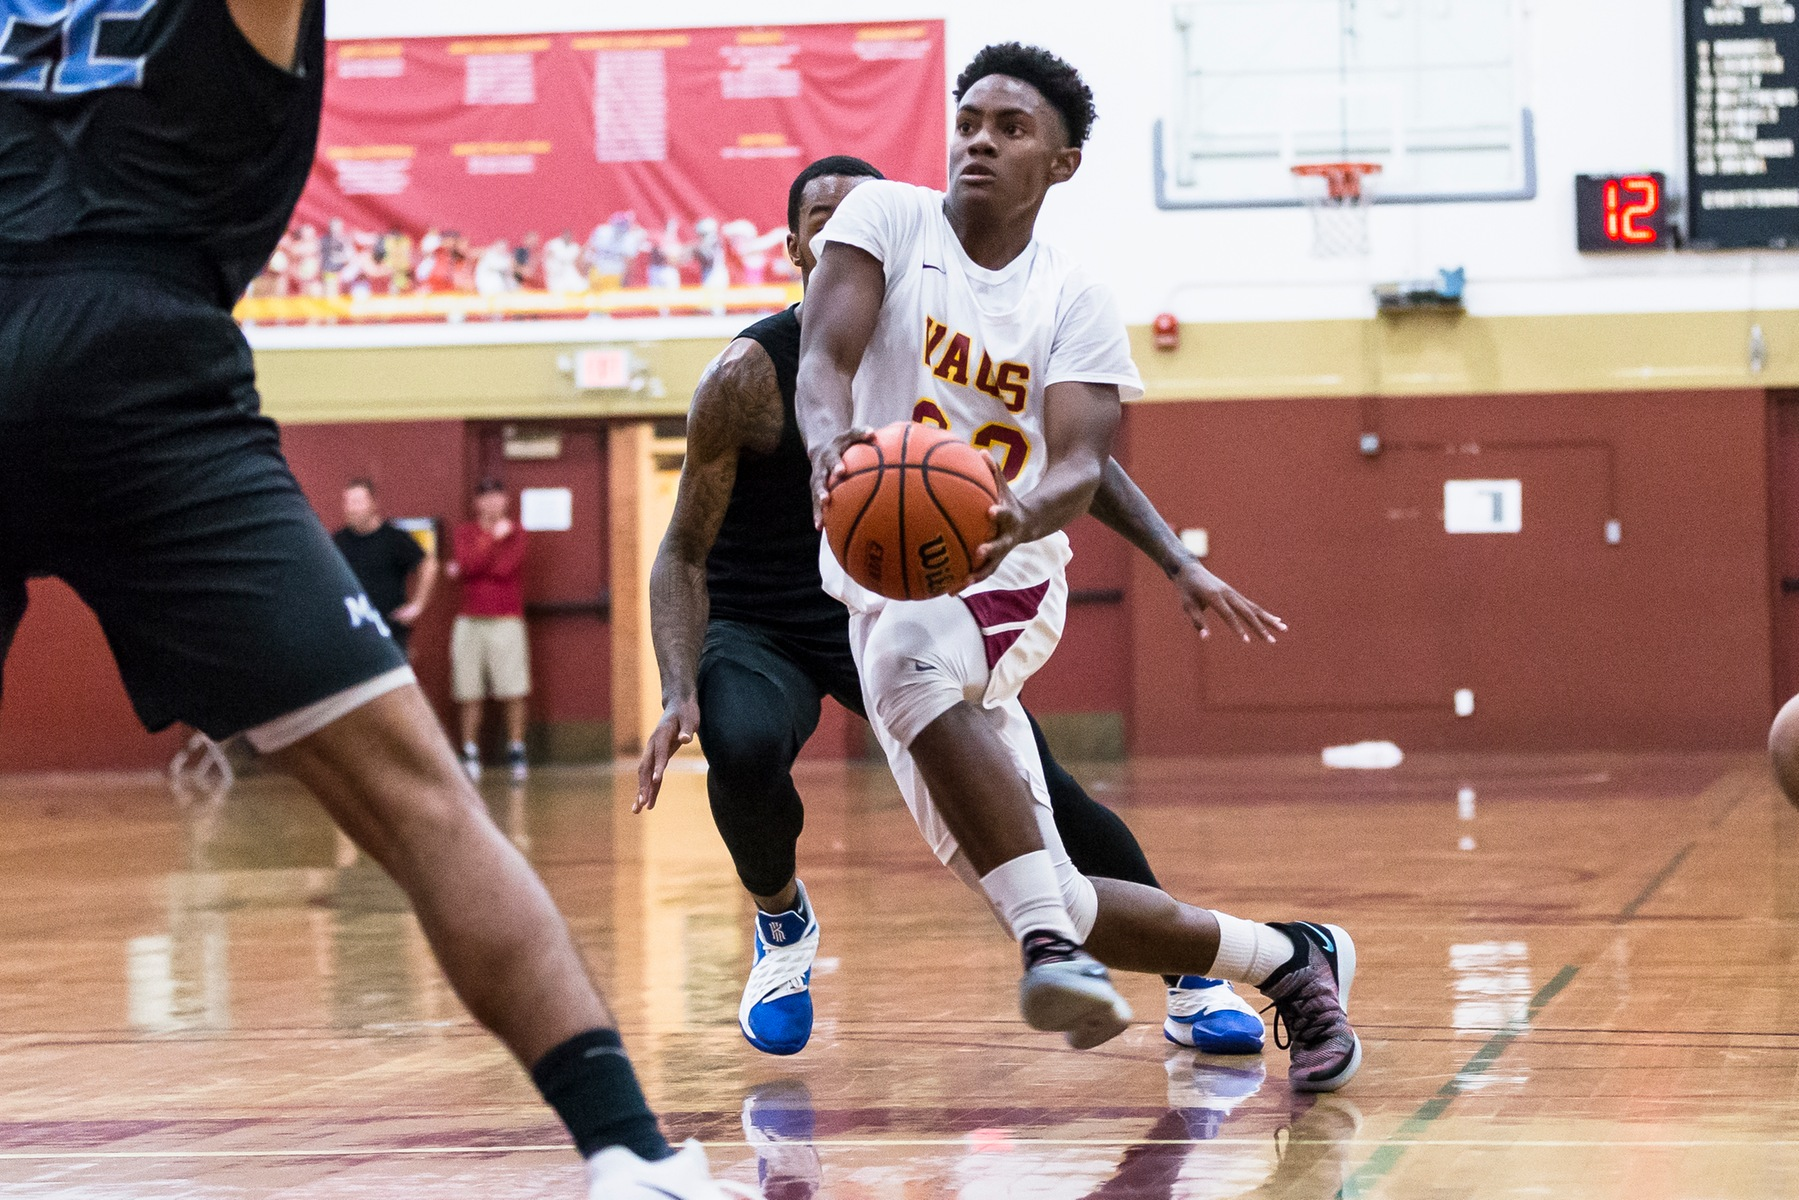 Shorthanded Glendale beats L.A. Valley 67-58 behind 27 points from Isaac Etter